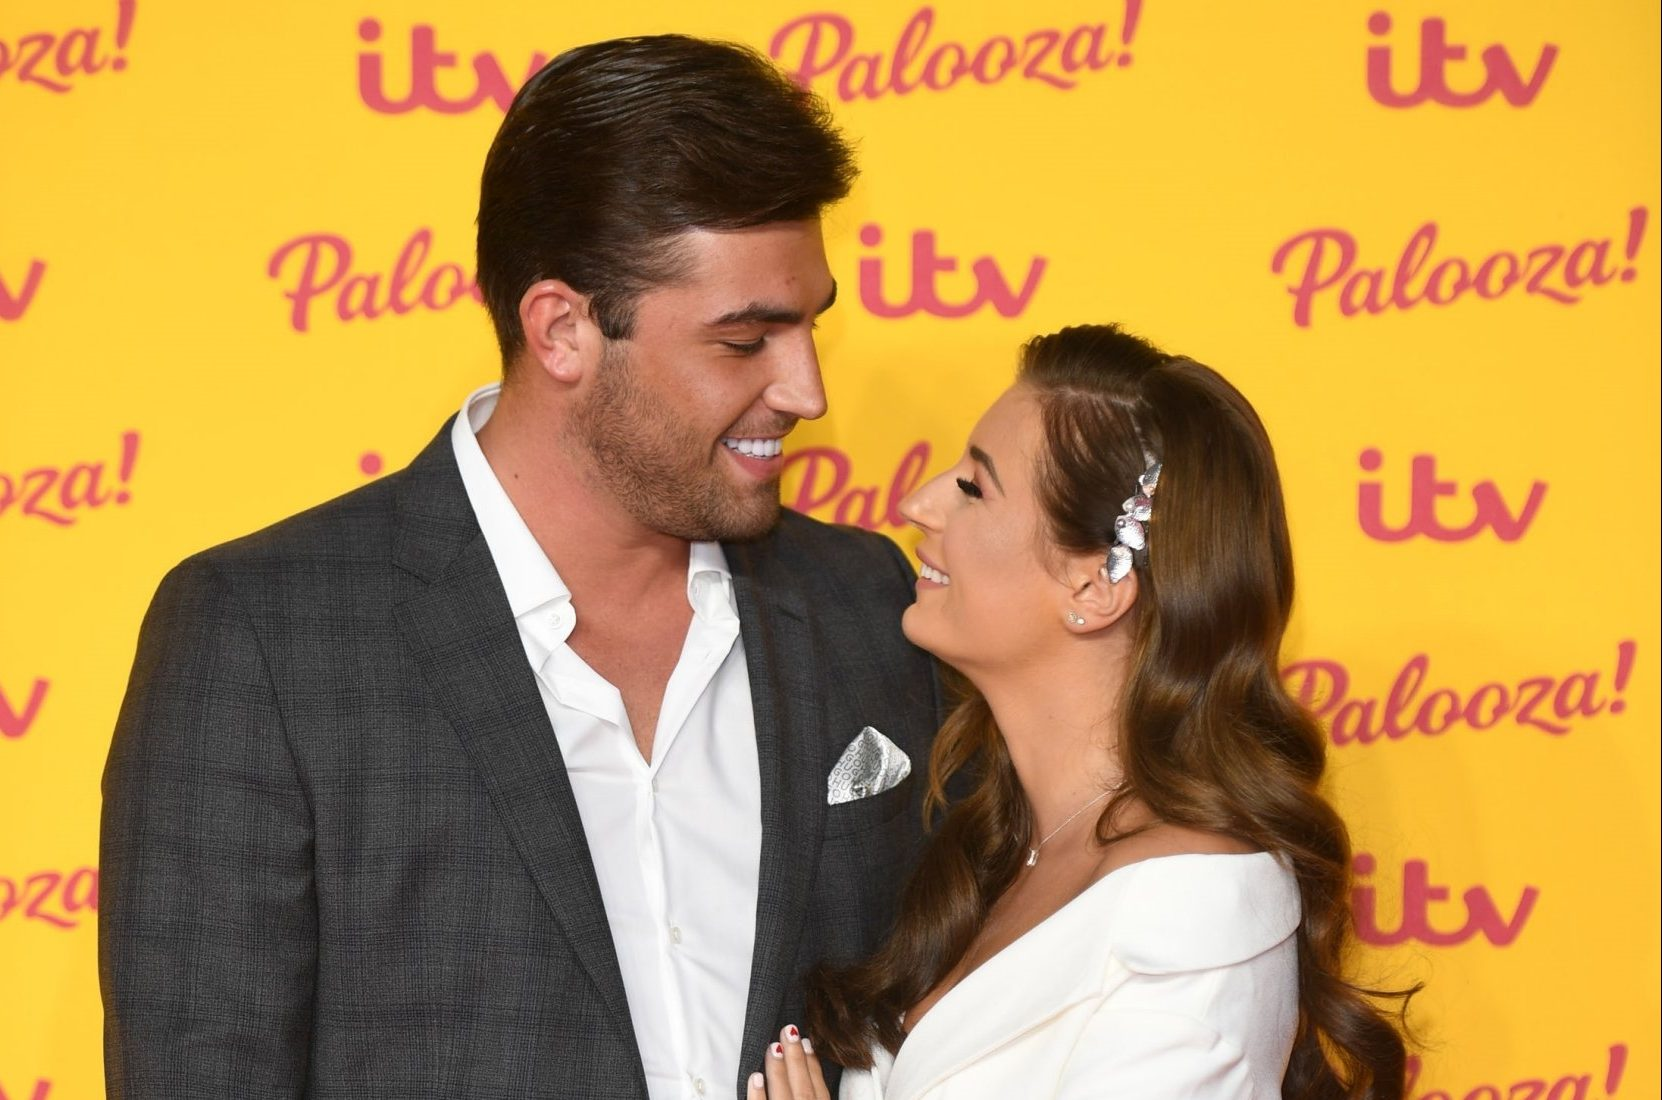 BGUK_1370397 - London, UNITED KINGDOM - Celebrities attend ITV Palooza held at the Royal Festival Hall, Southbank Centre, London. Pictured: Jack Fincham and Dani Dyer BACKGRID UK 16 OCTOBER 2018 BYLINE MUST READ: TIMMSY / BACKGRID UK: +44 208 344 2007 / uksales@backgrid.com USA: +1 310 798 9111 / usasales@backgrid.com *UK Clients - Pictures Containing Children Please Pixelate Face Prior To Publication*